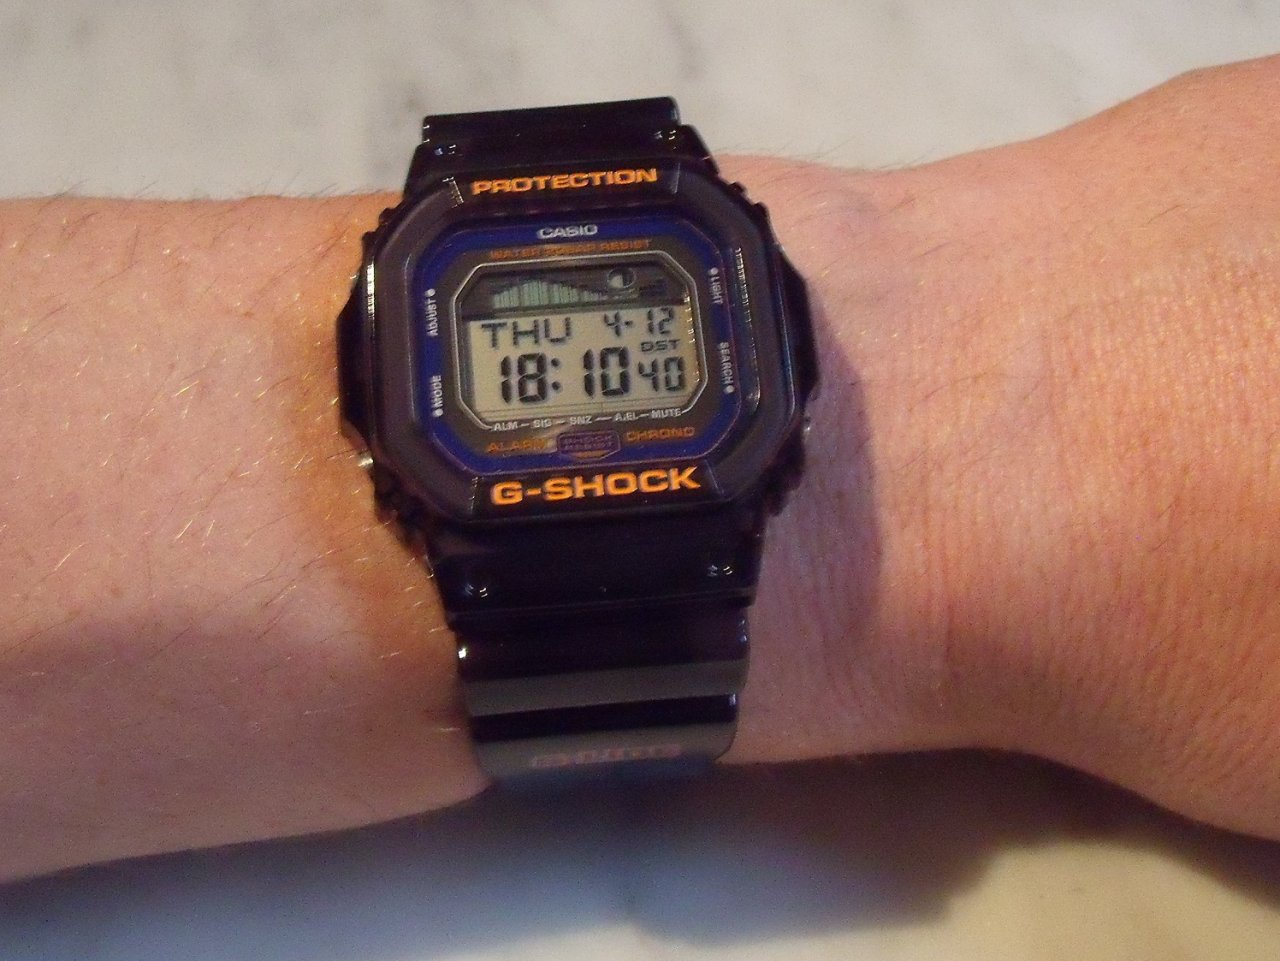 casio g shock uhr in orange oder mit orangenen akzenten. Black Bedroom Furniture Sets. Home Design Ideas